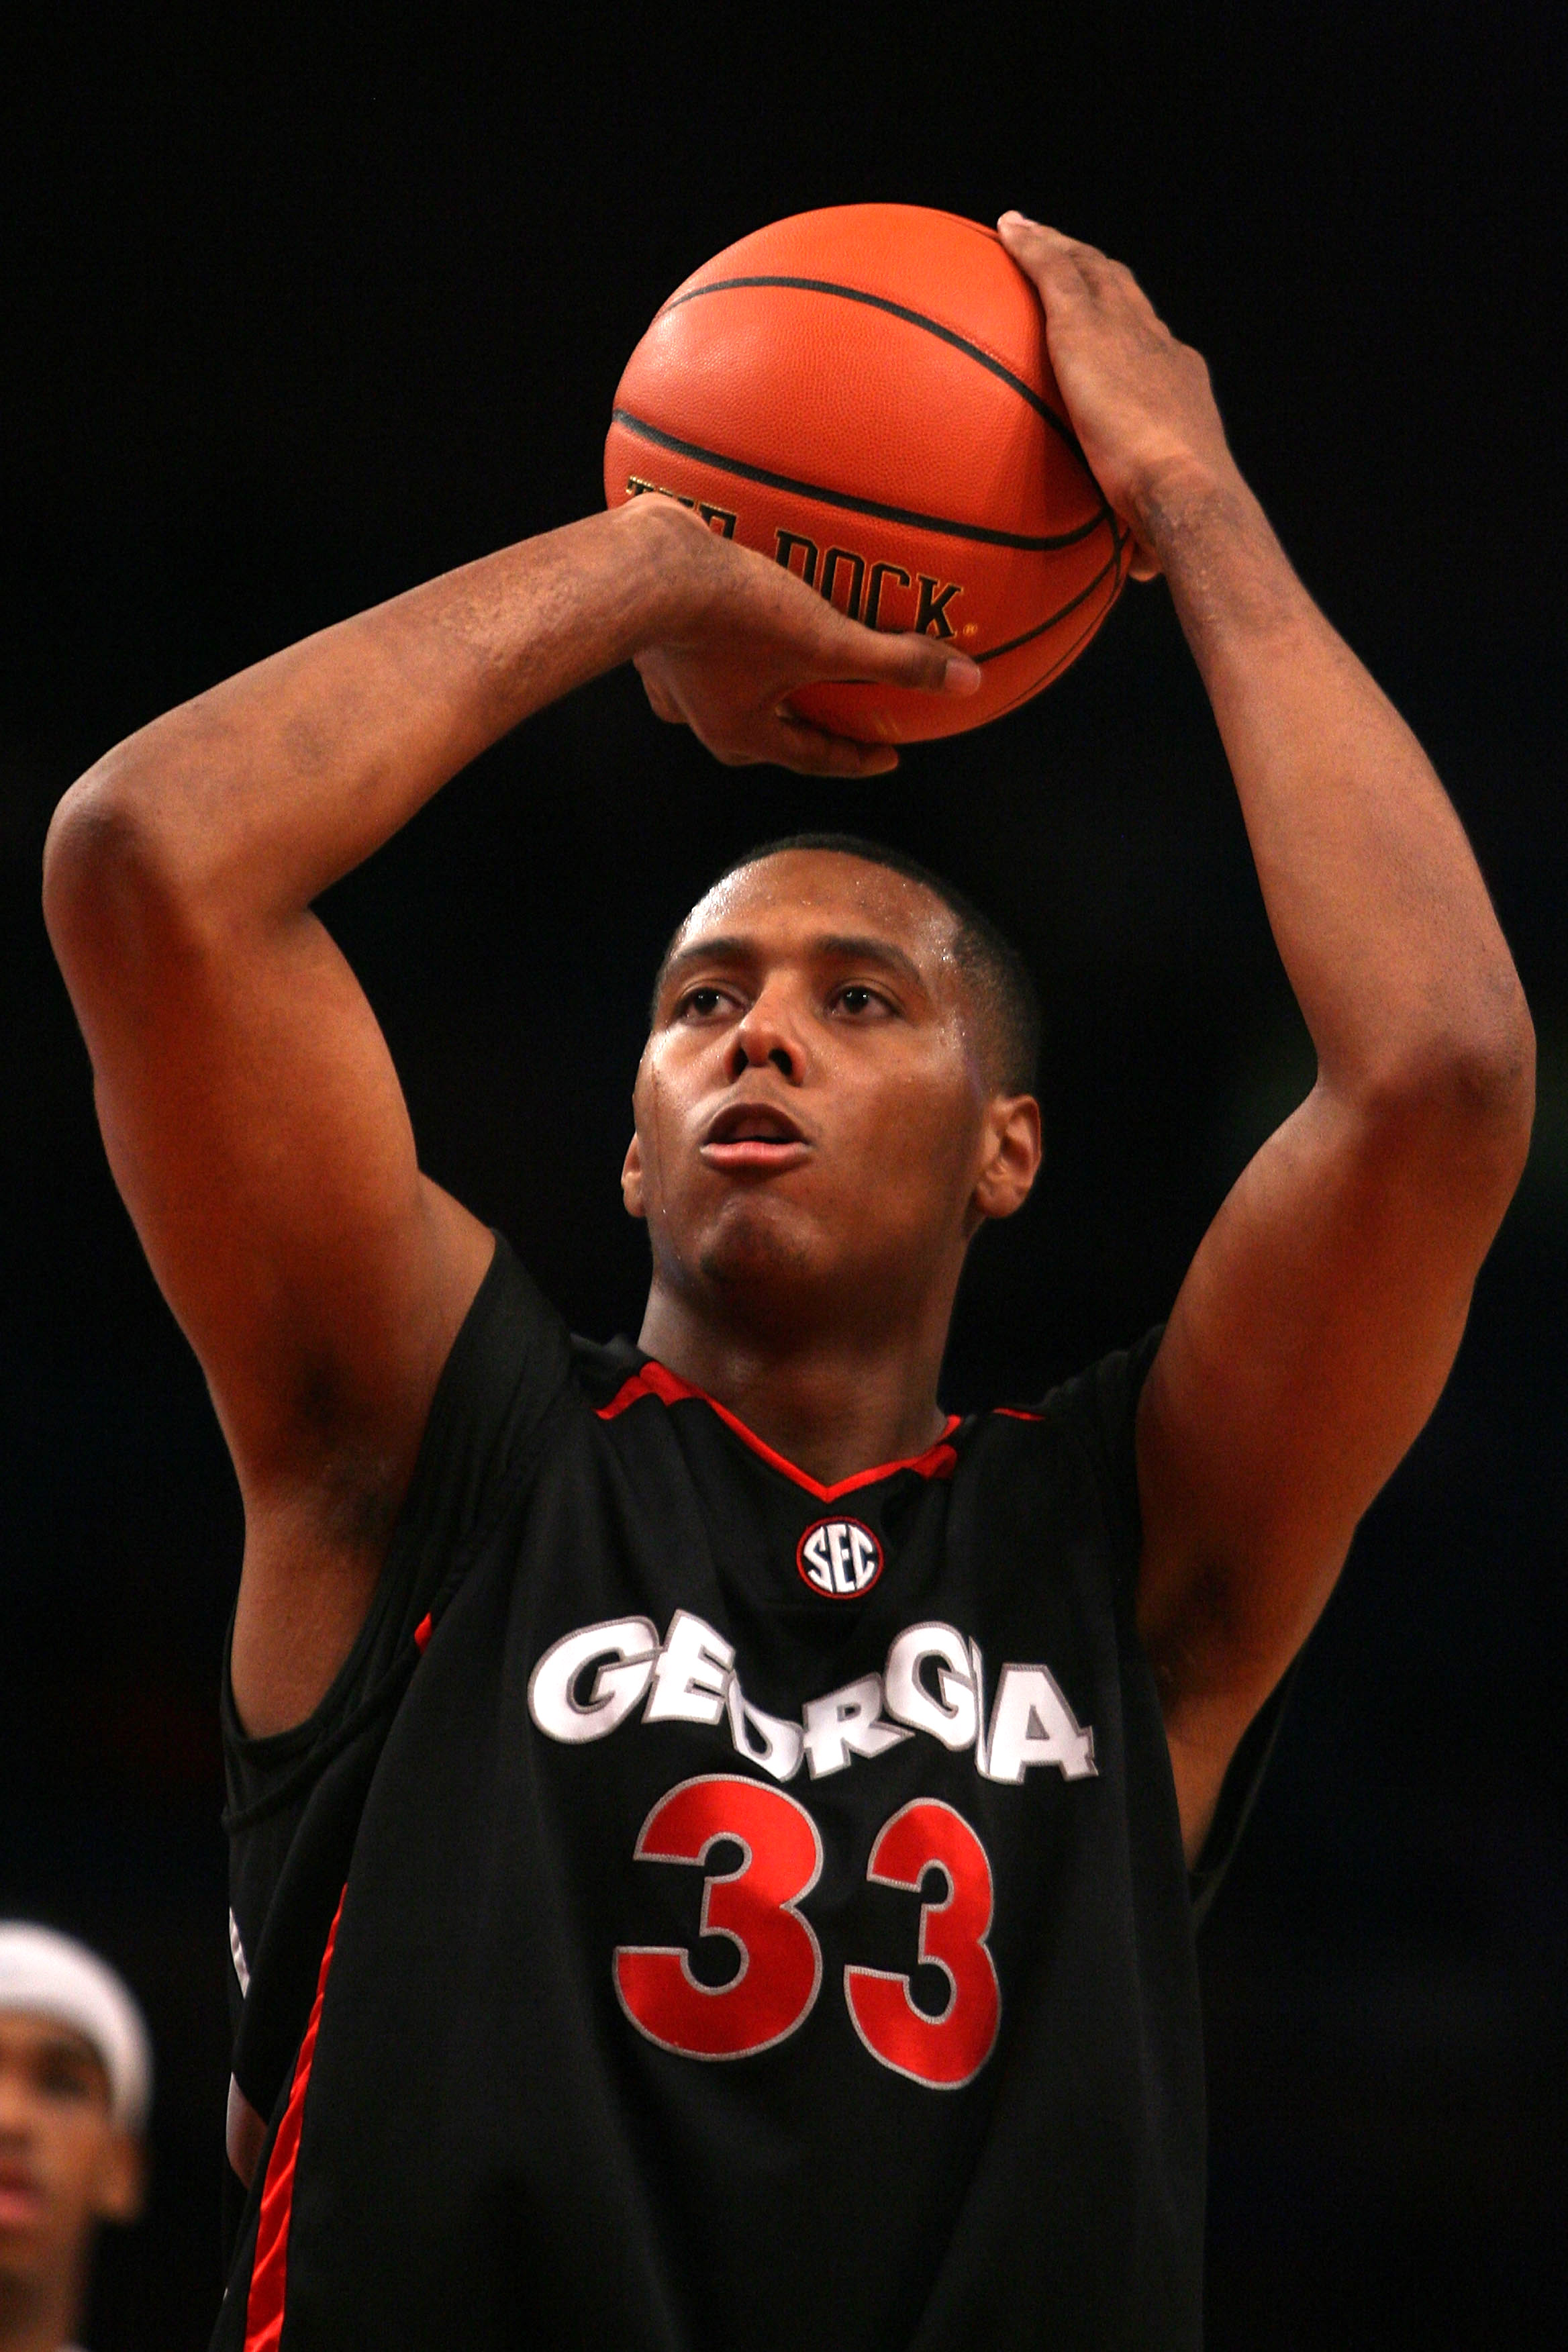 NEW YORK - DECEMBER 09: Trey Thompkins #33 of the Georgia Bulldogs shoots a free throw against the St. John's Red Storm during the SEC Big East Invitational at Madison Square Garden on December 9, 2009 in New York, New York. The Red Storm defeated the Bul